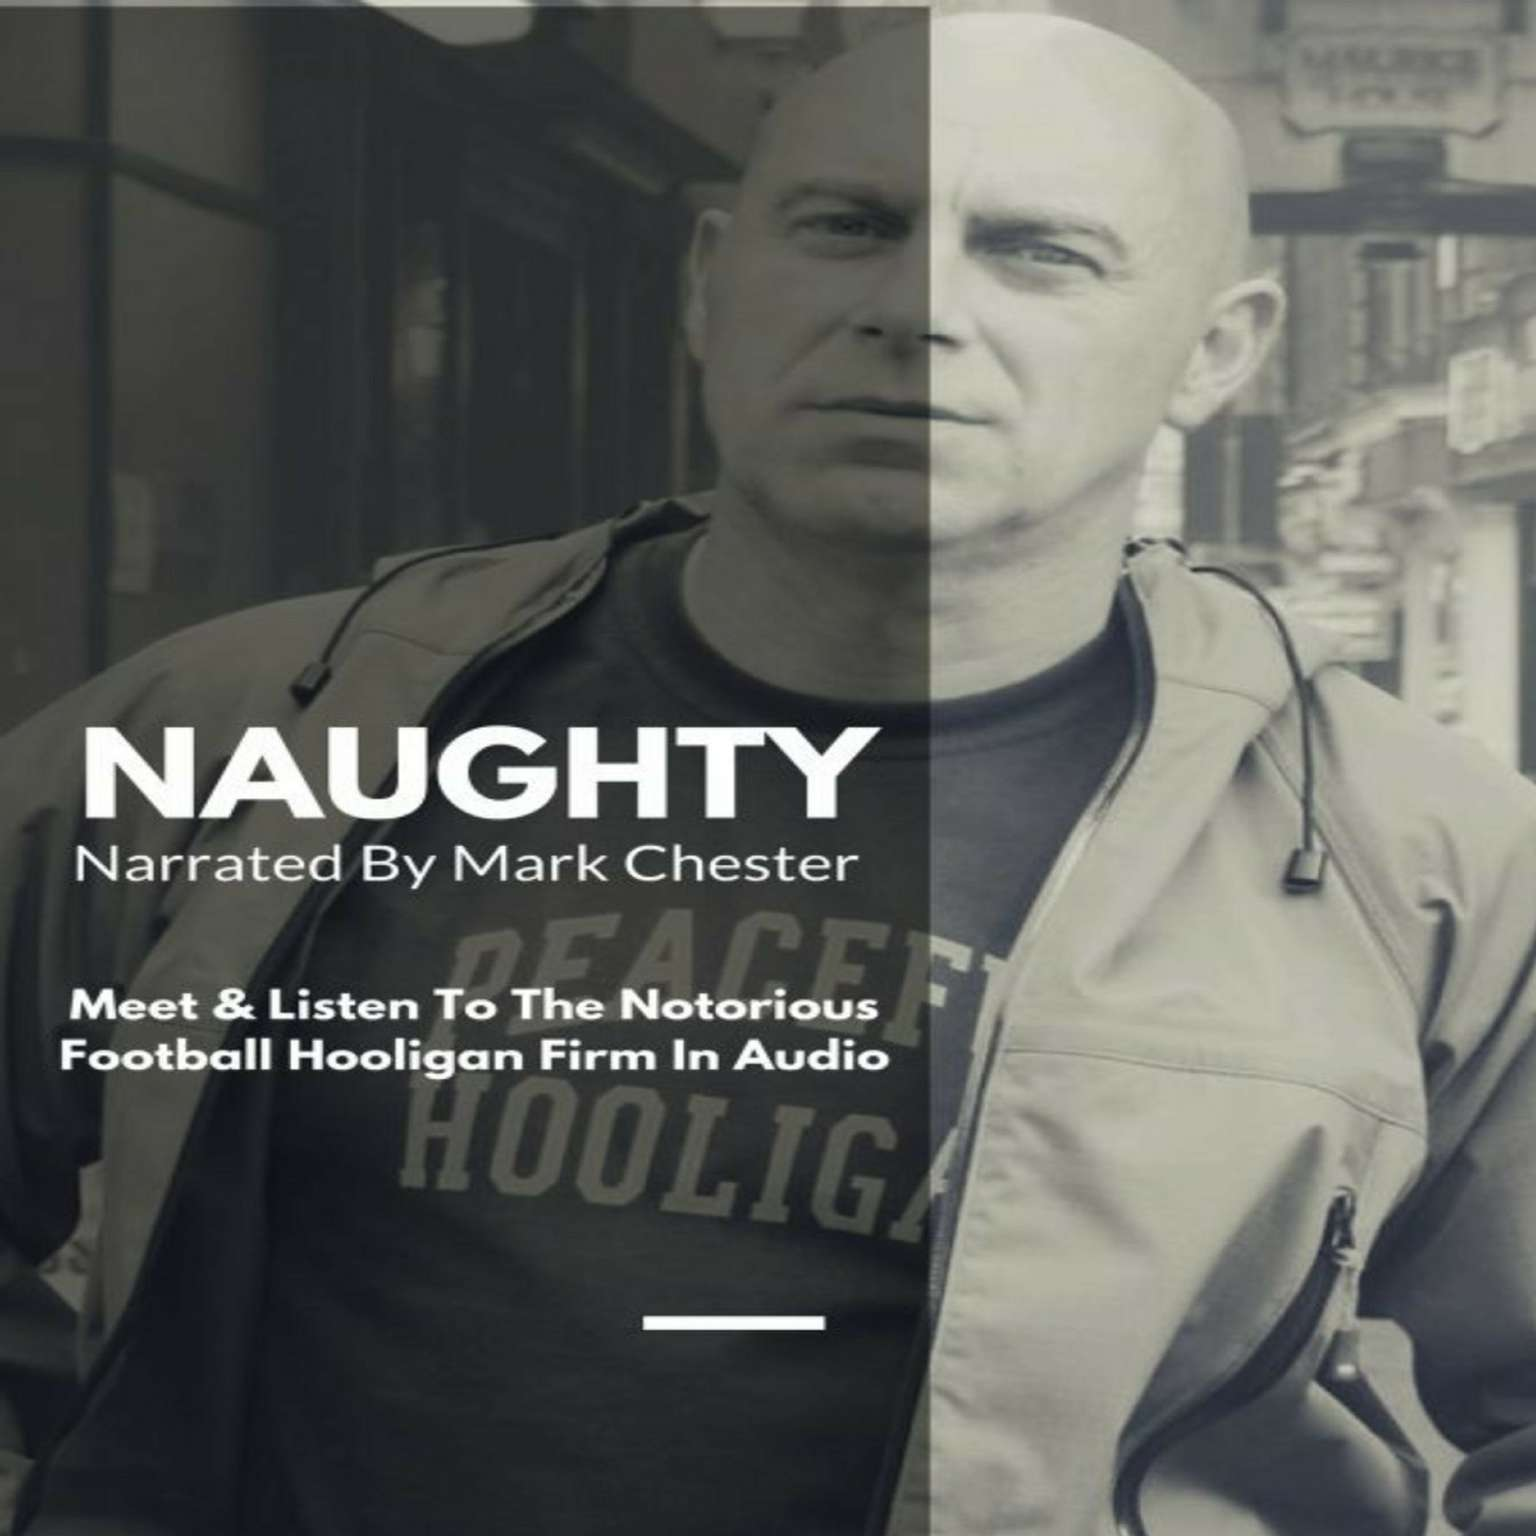 Naughty: The Story of a Football Hooligan Gang Audiobook, by Mark Chester